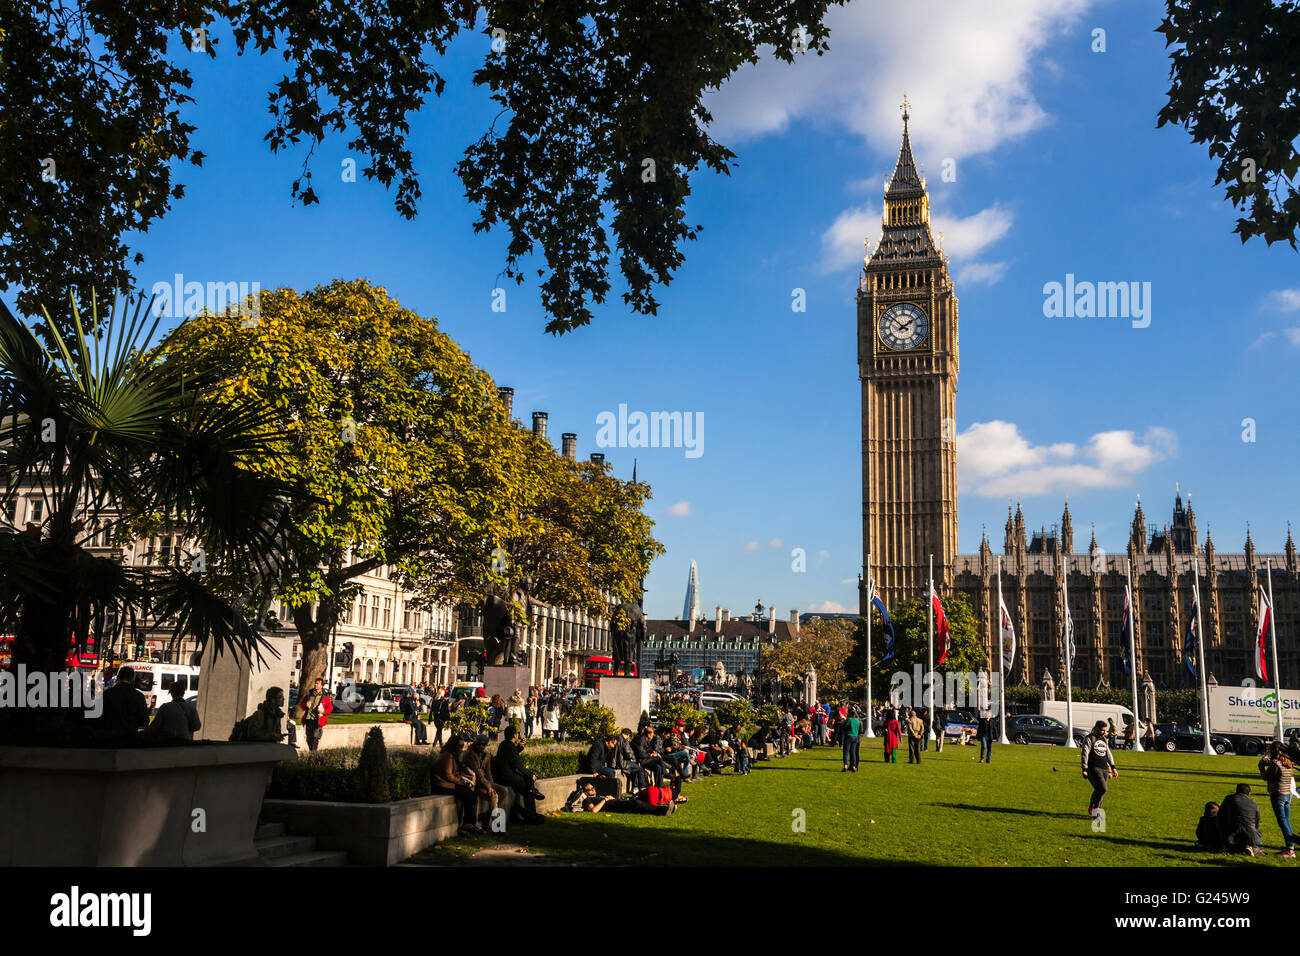 Elizabeth Tower (Big Ben) and Parliament Square, London, England. - Stock Image